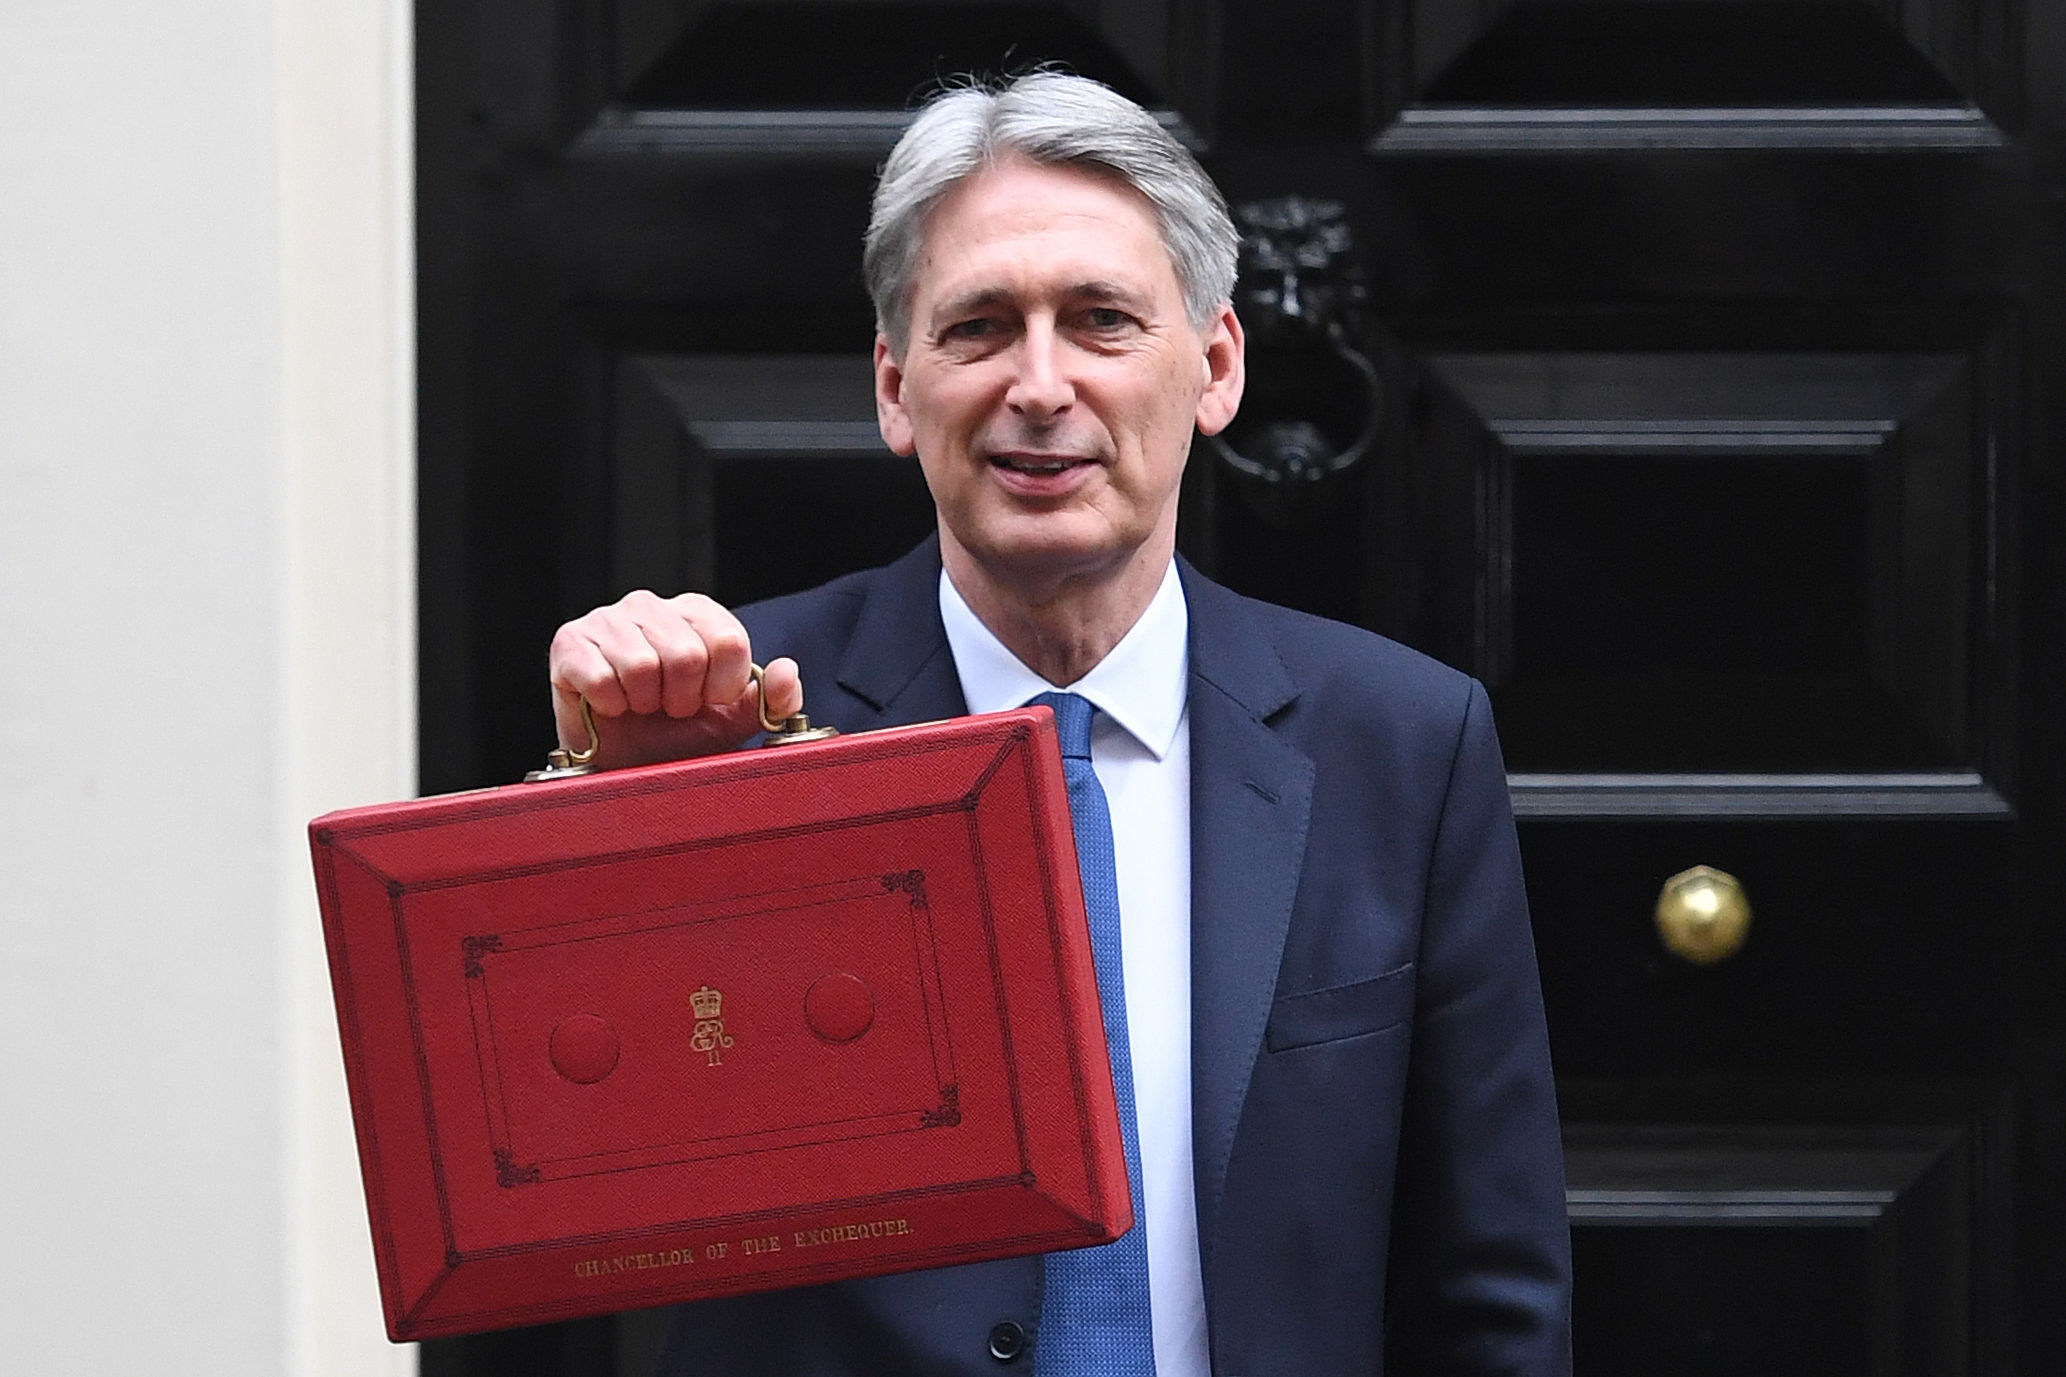 Chancellor Philip Hammond will deliver his second Budget later this year